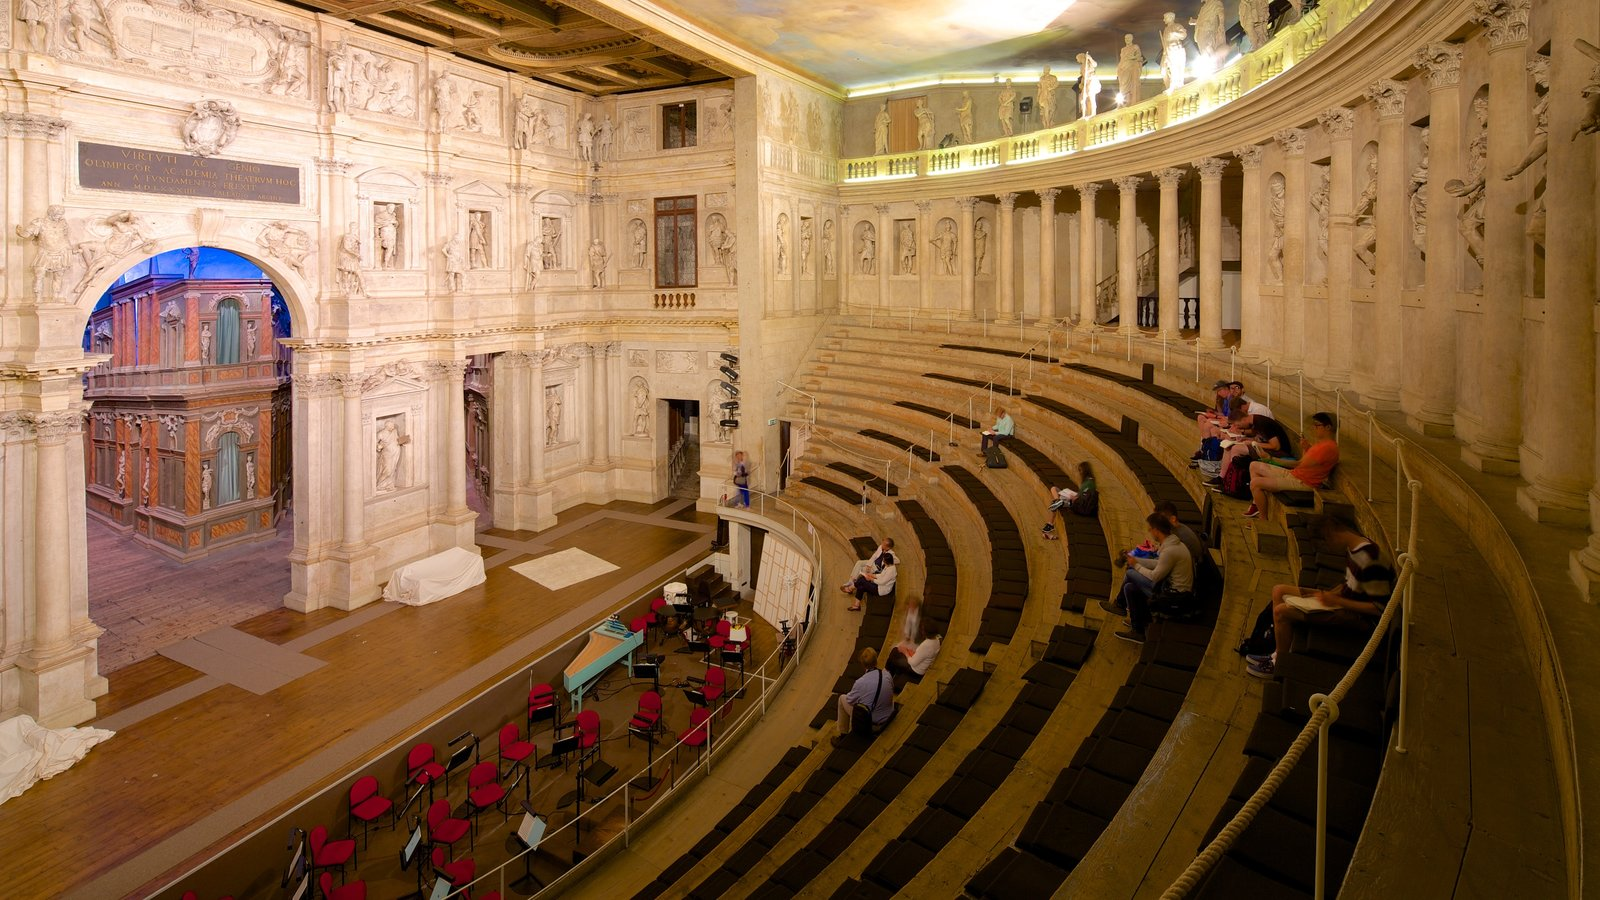 Vicenza which includes theater scenes and interior views